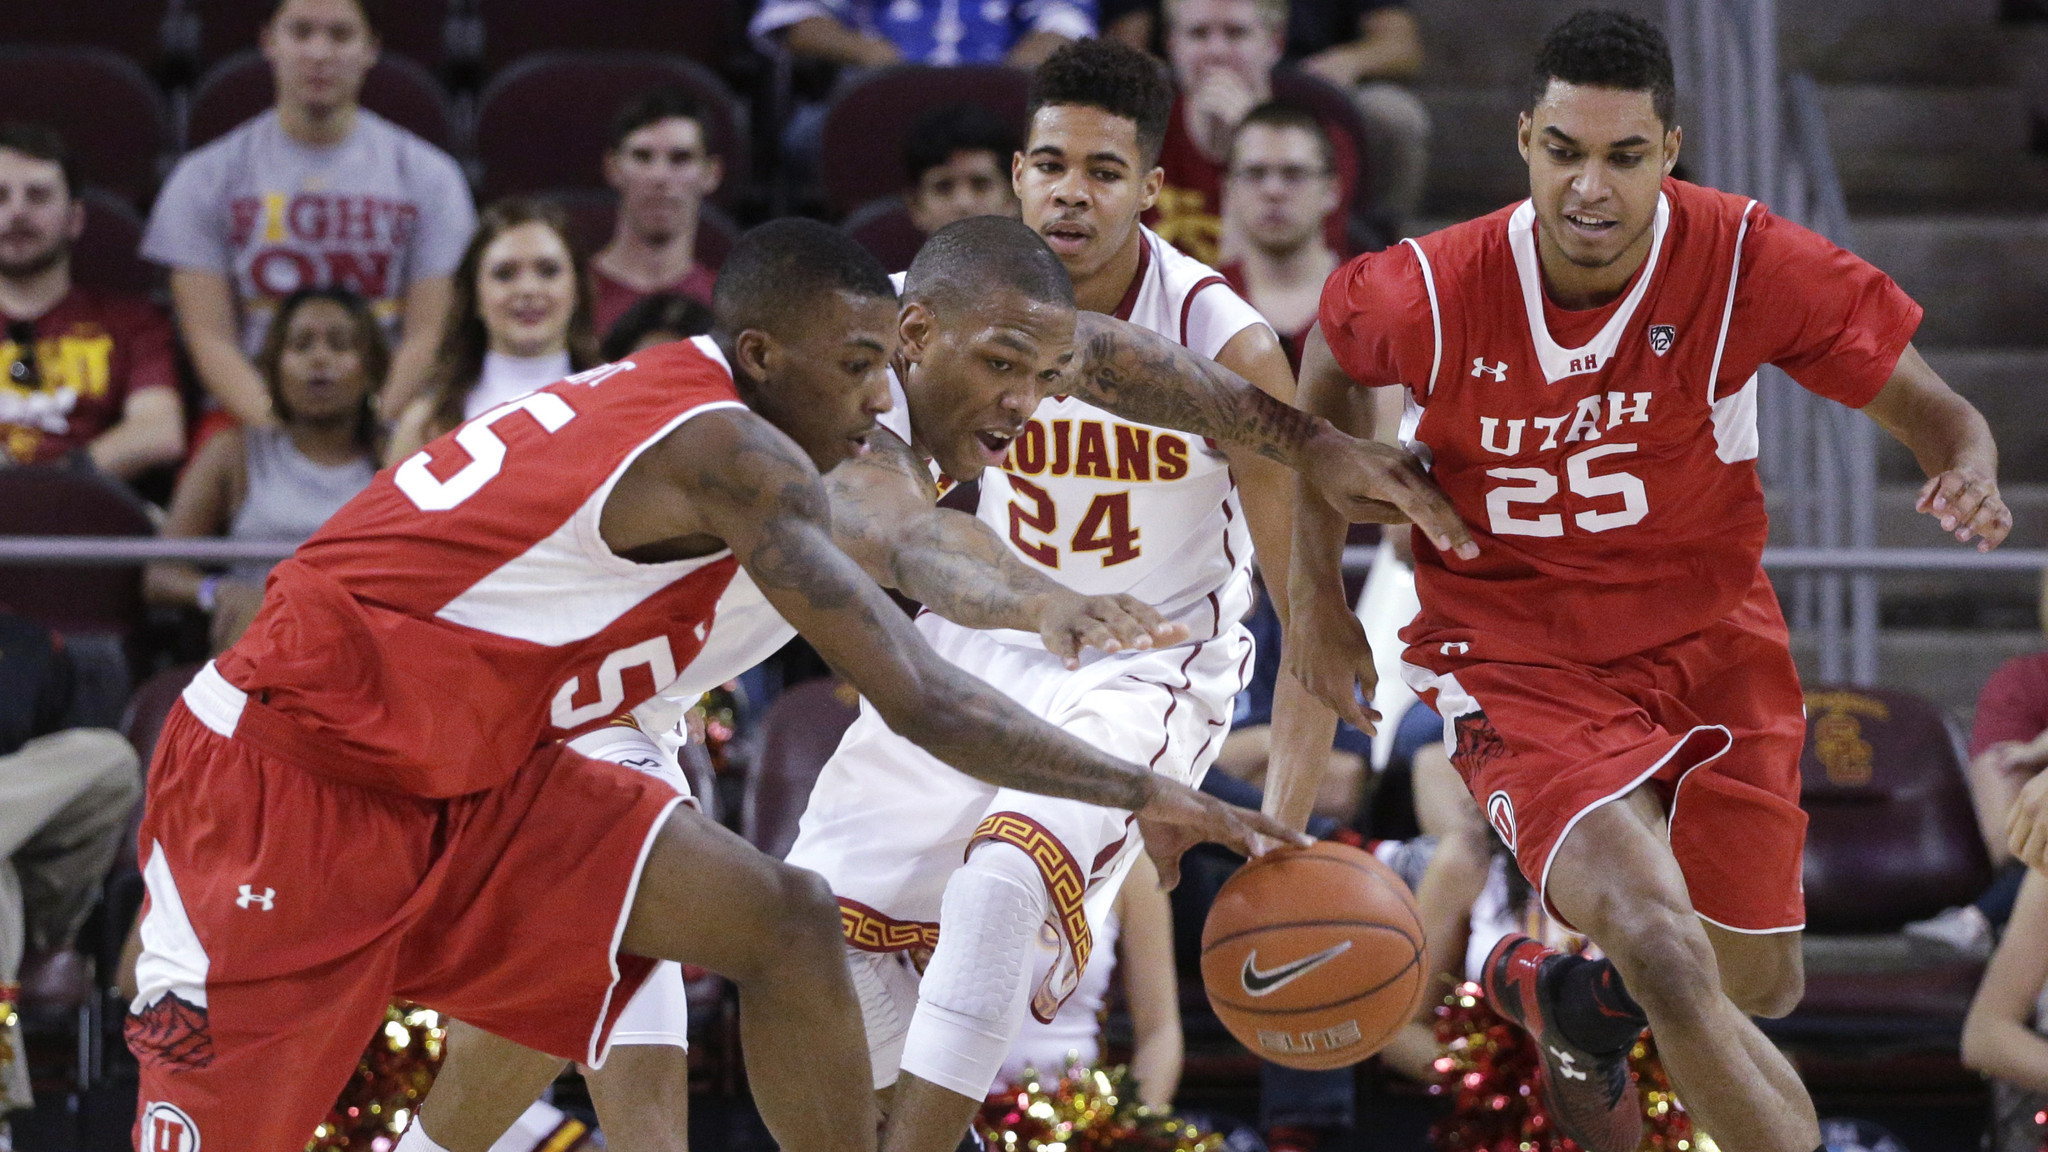 USC is blown out by No. 11 Utah, 67-39